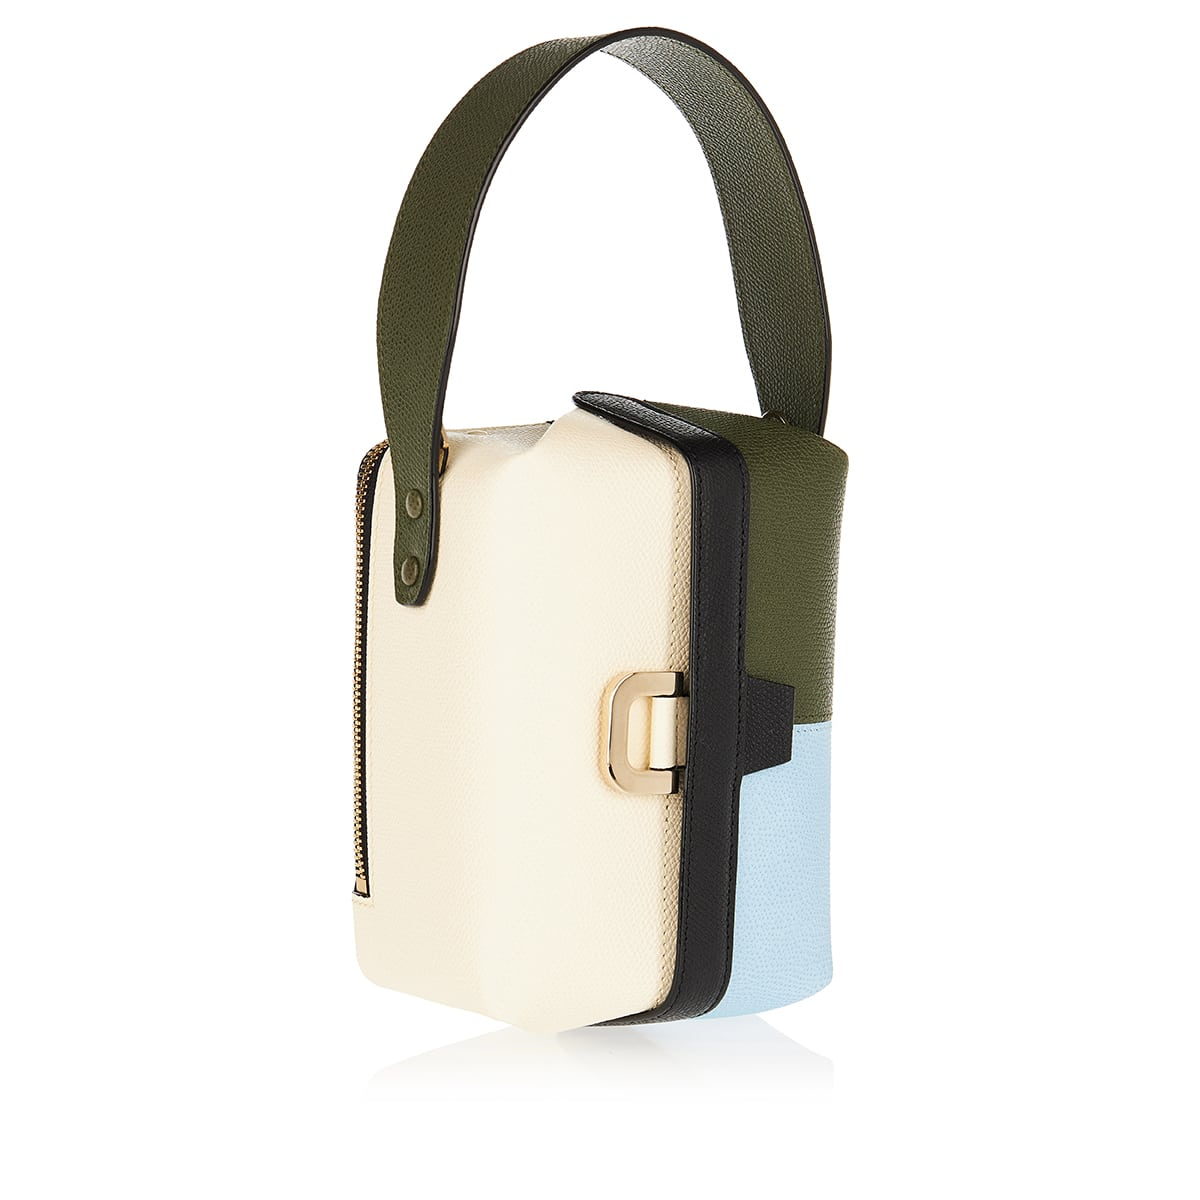 Tric Trac color-block leather bucket bag